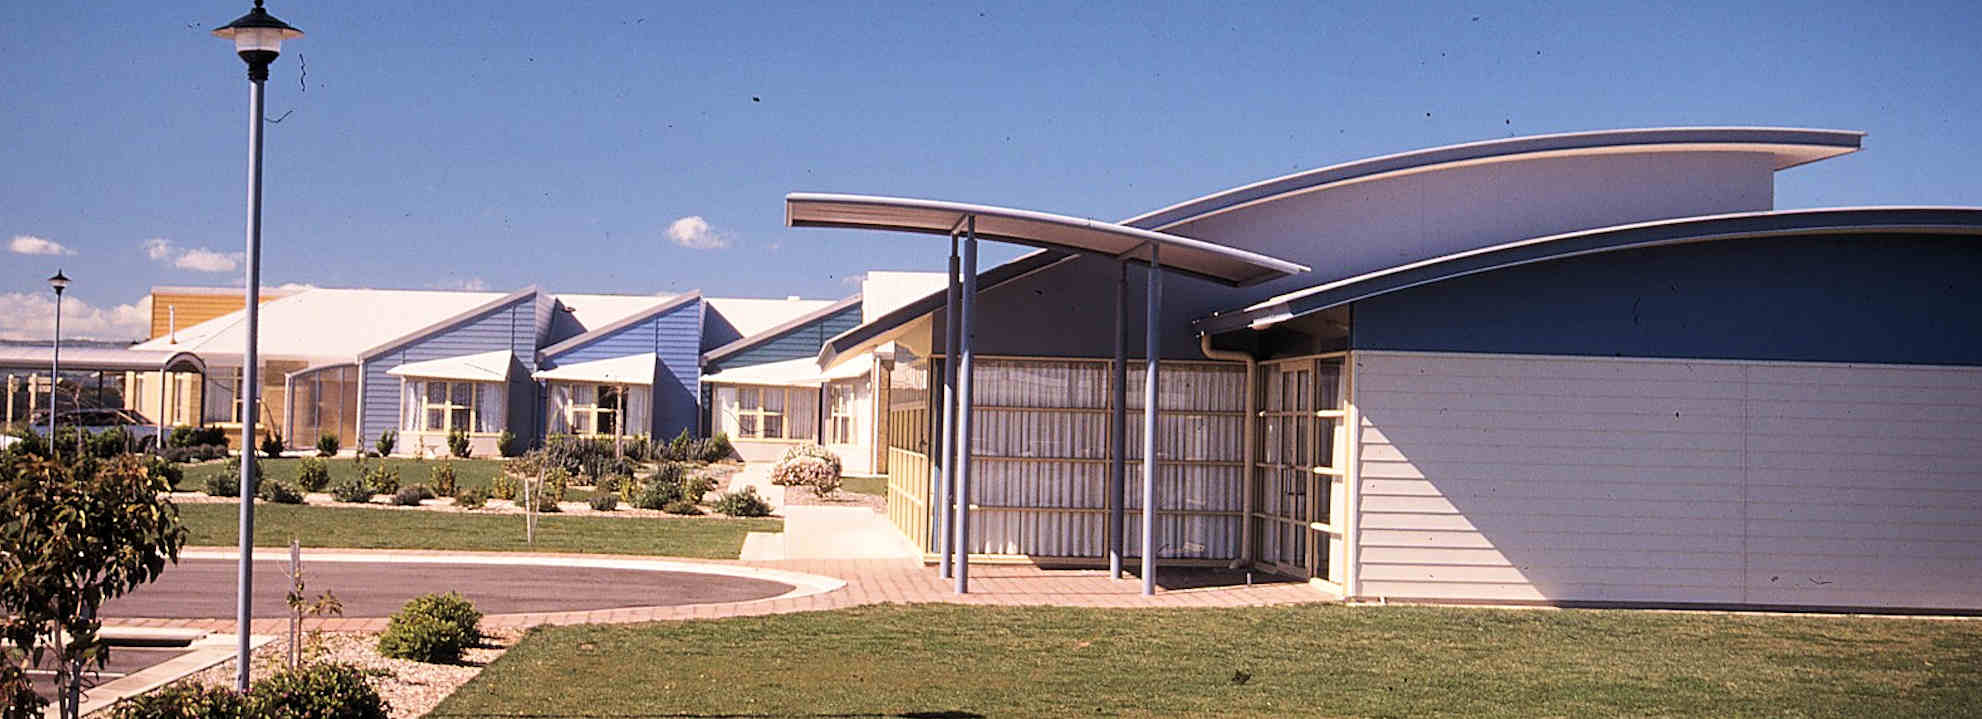 Aldinga Beach court